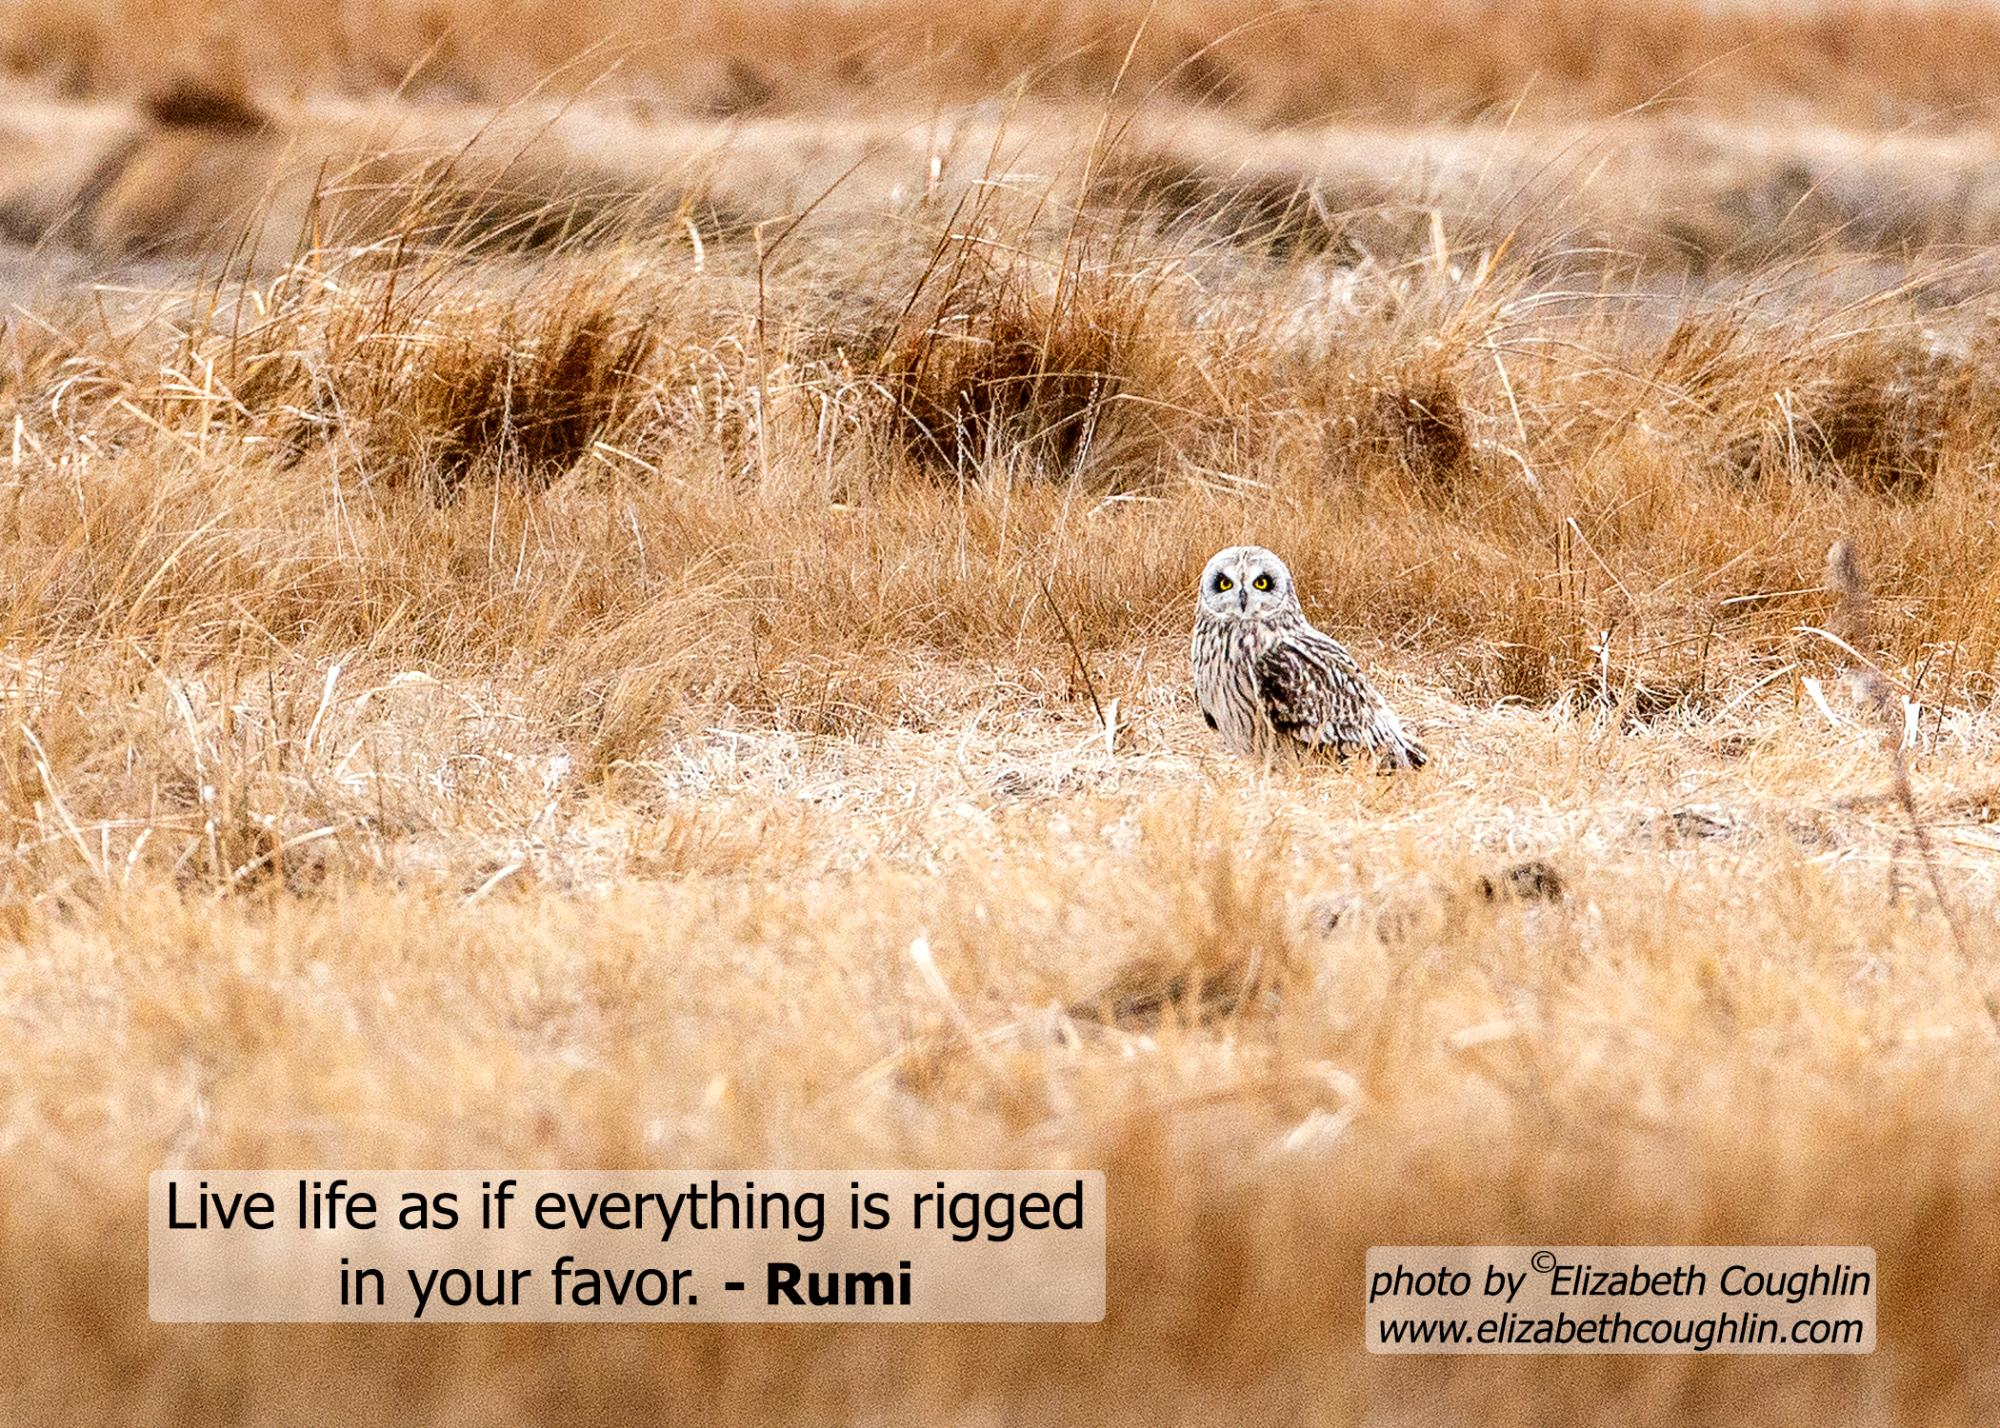 Owl_Short-eared_LiveLife.jpg